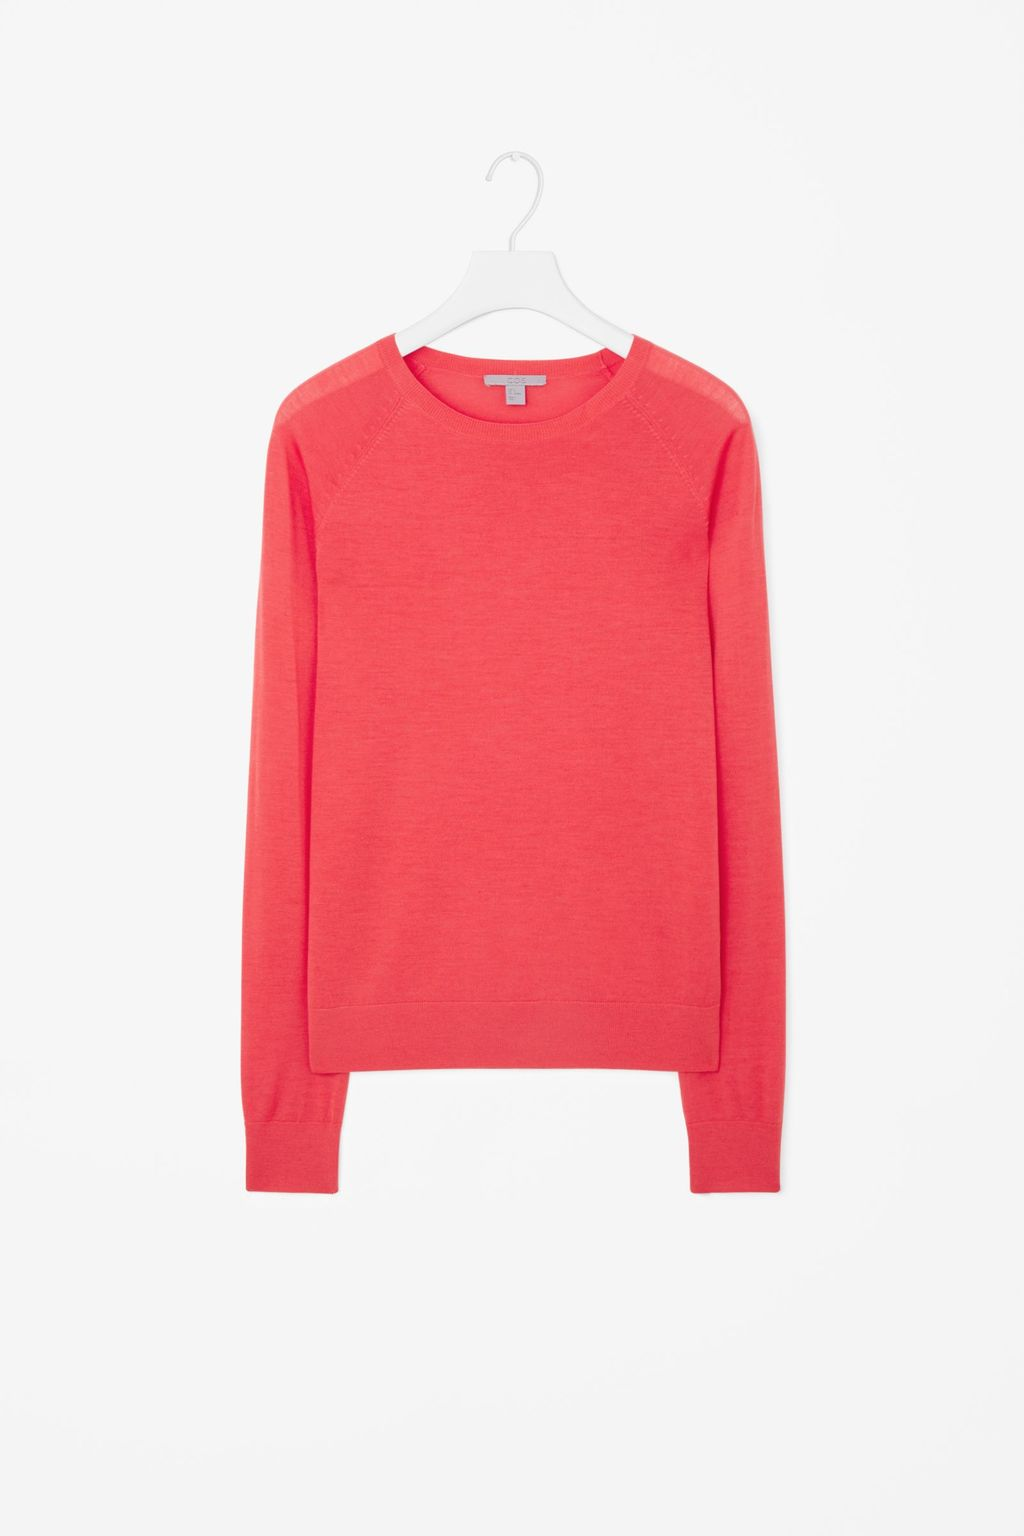 Round Neck Knit Jumper - pattern: plain; length: below the bottom; style: standard; predominant colour: hot pink; occasions: casual, creative work; fibres: wool - 100%; fit: loose; neckline: crew; sleeve length: long sleeve; sleeve style: standard; texture group: knits/crochet; pattern type: knitted - fine stitch; season: a/w 2015; wardrobe: highlight